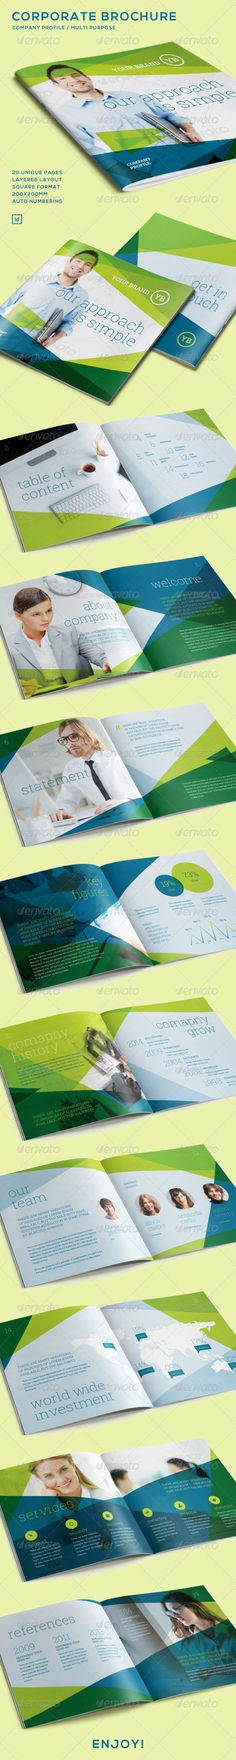 119 best Annual Reports images on Pinterest Annual reports - proposal layouts